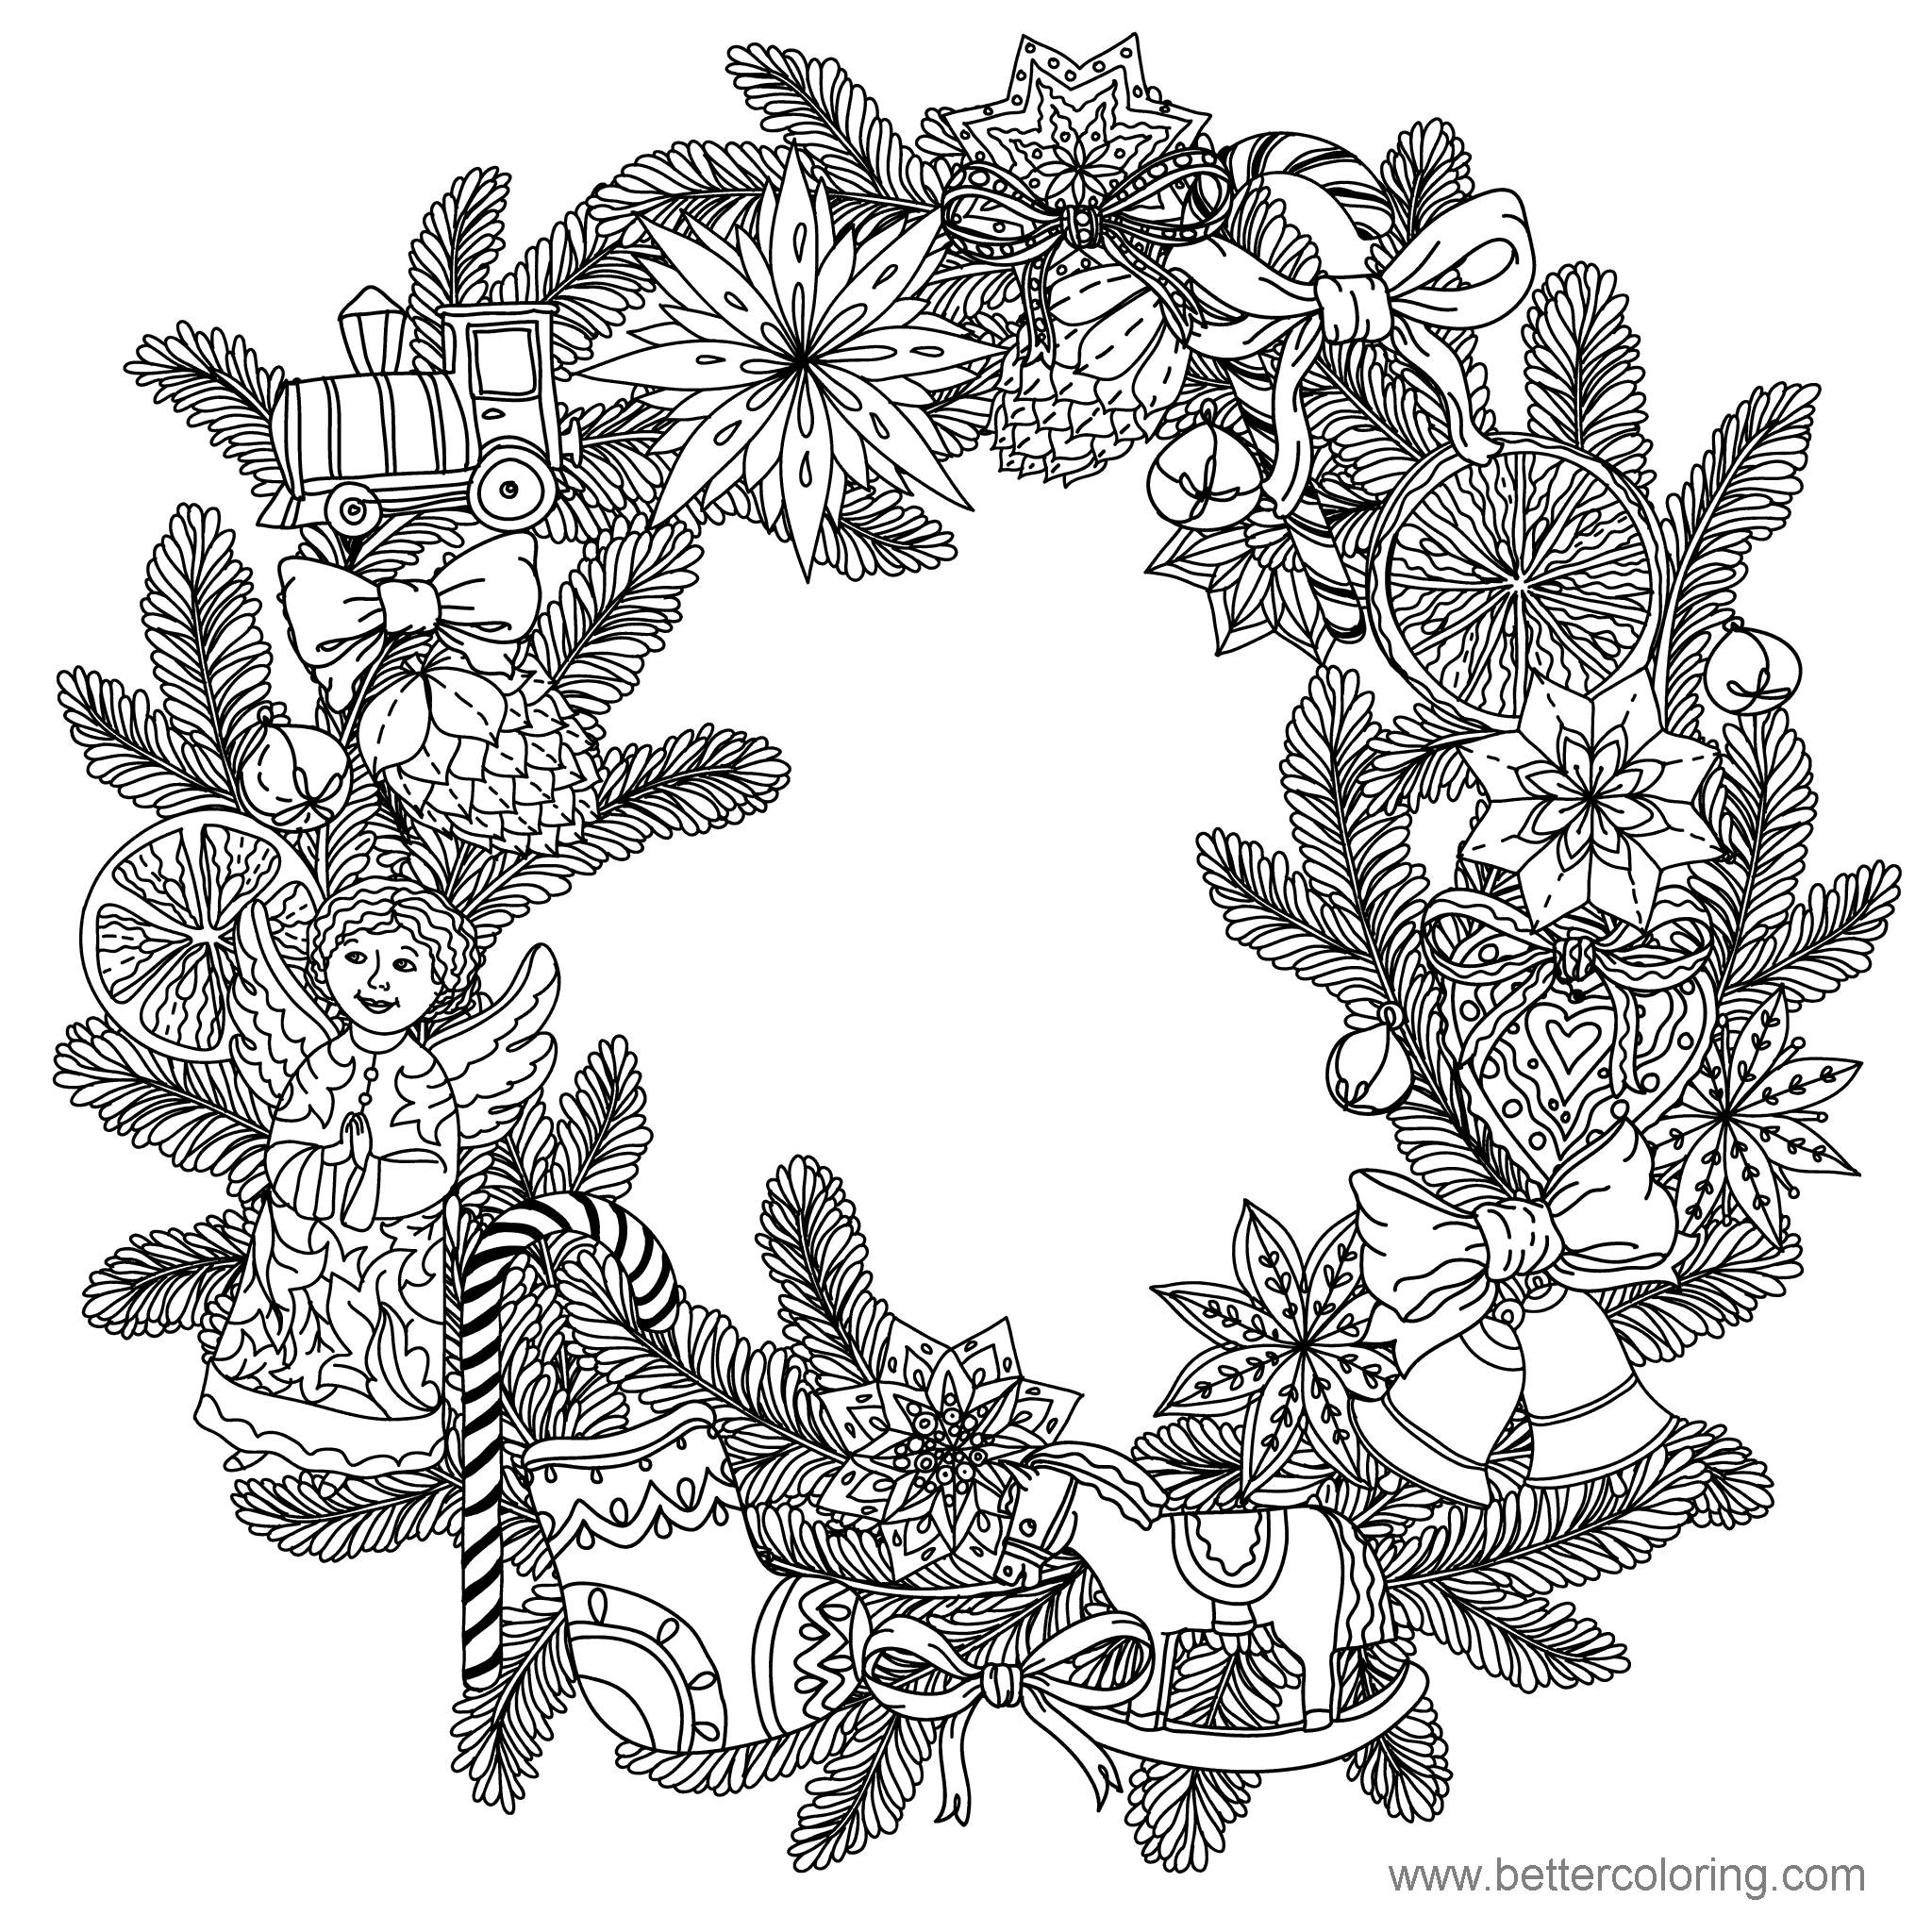 Free Detailed Christmas Wreath Coloring Pages printable